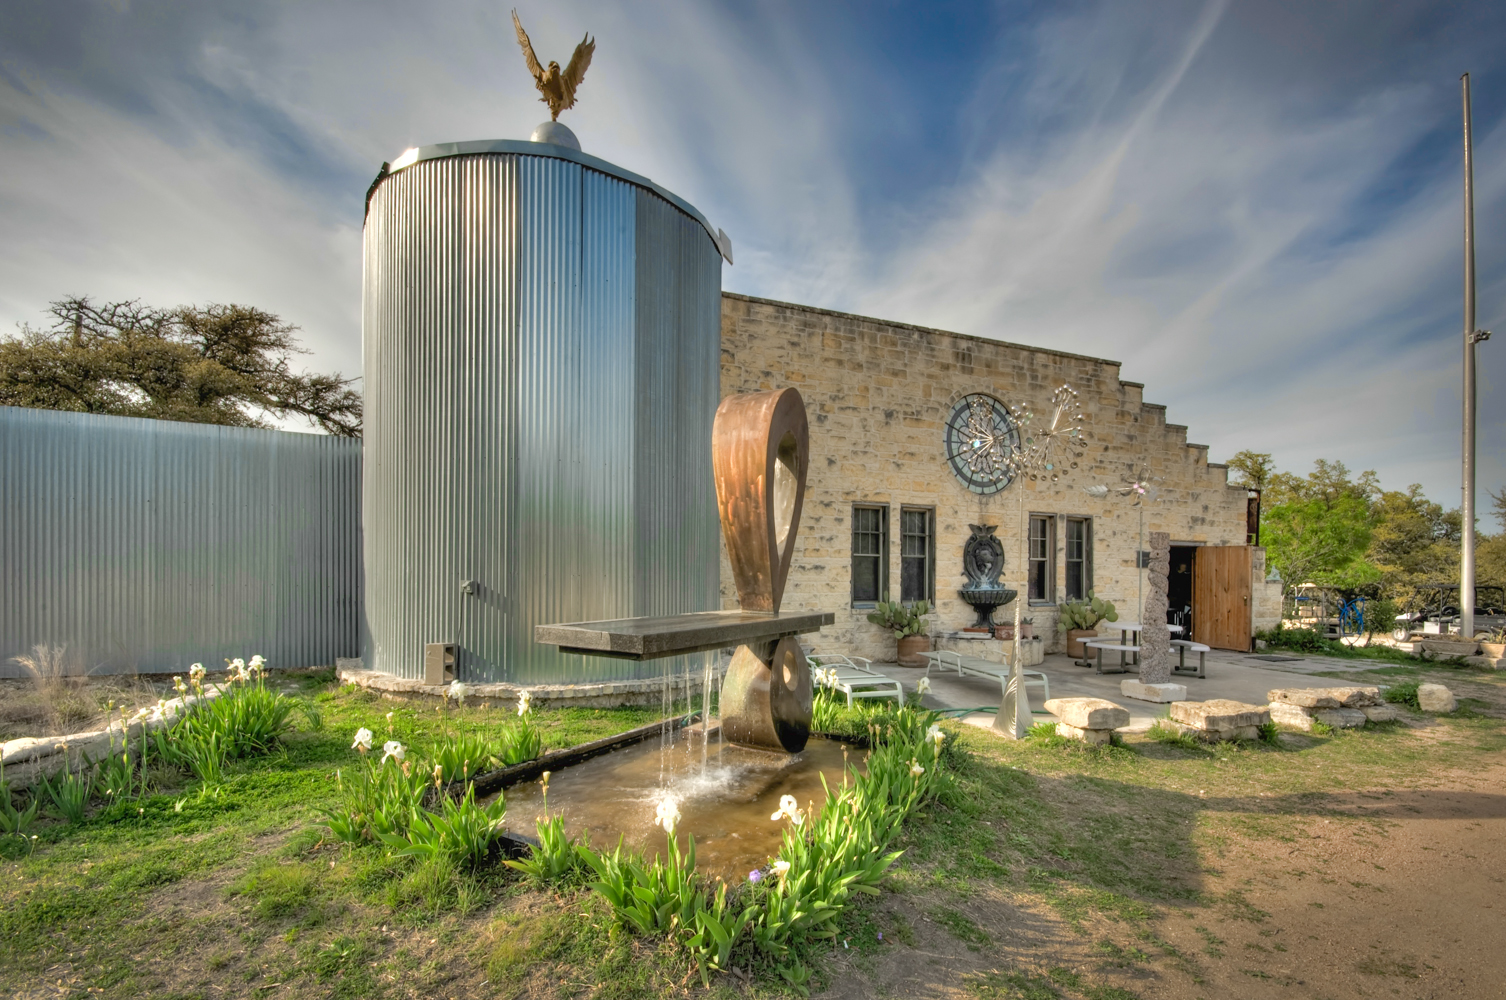 The property's current owners are Italian artist Benini and his wife Lorraine, who purchased it in 1999. (Image courtesy of Coldwell Banker)